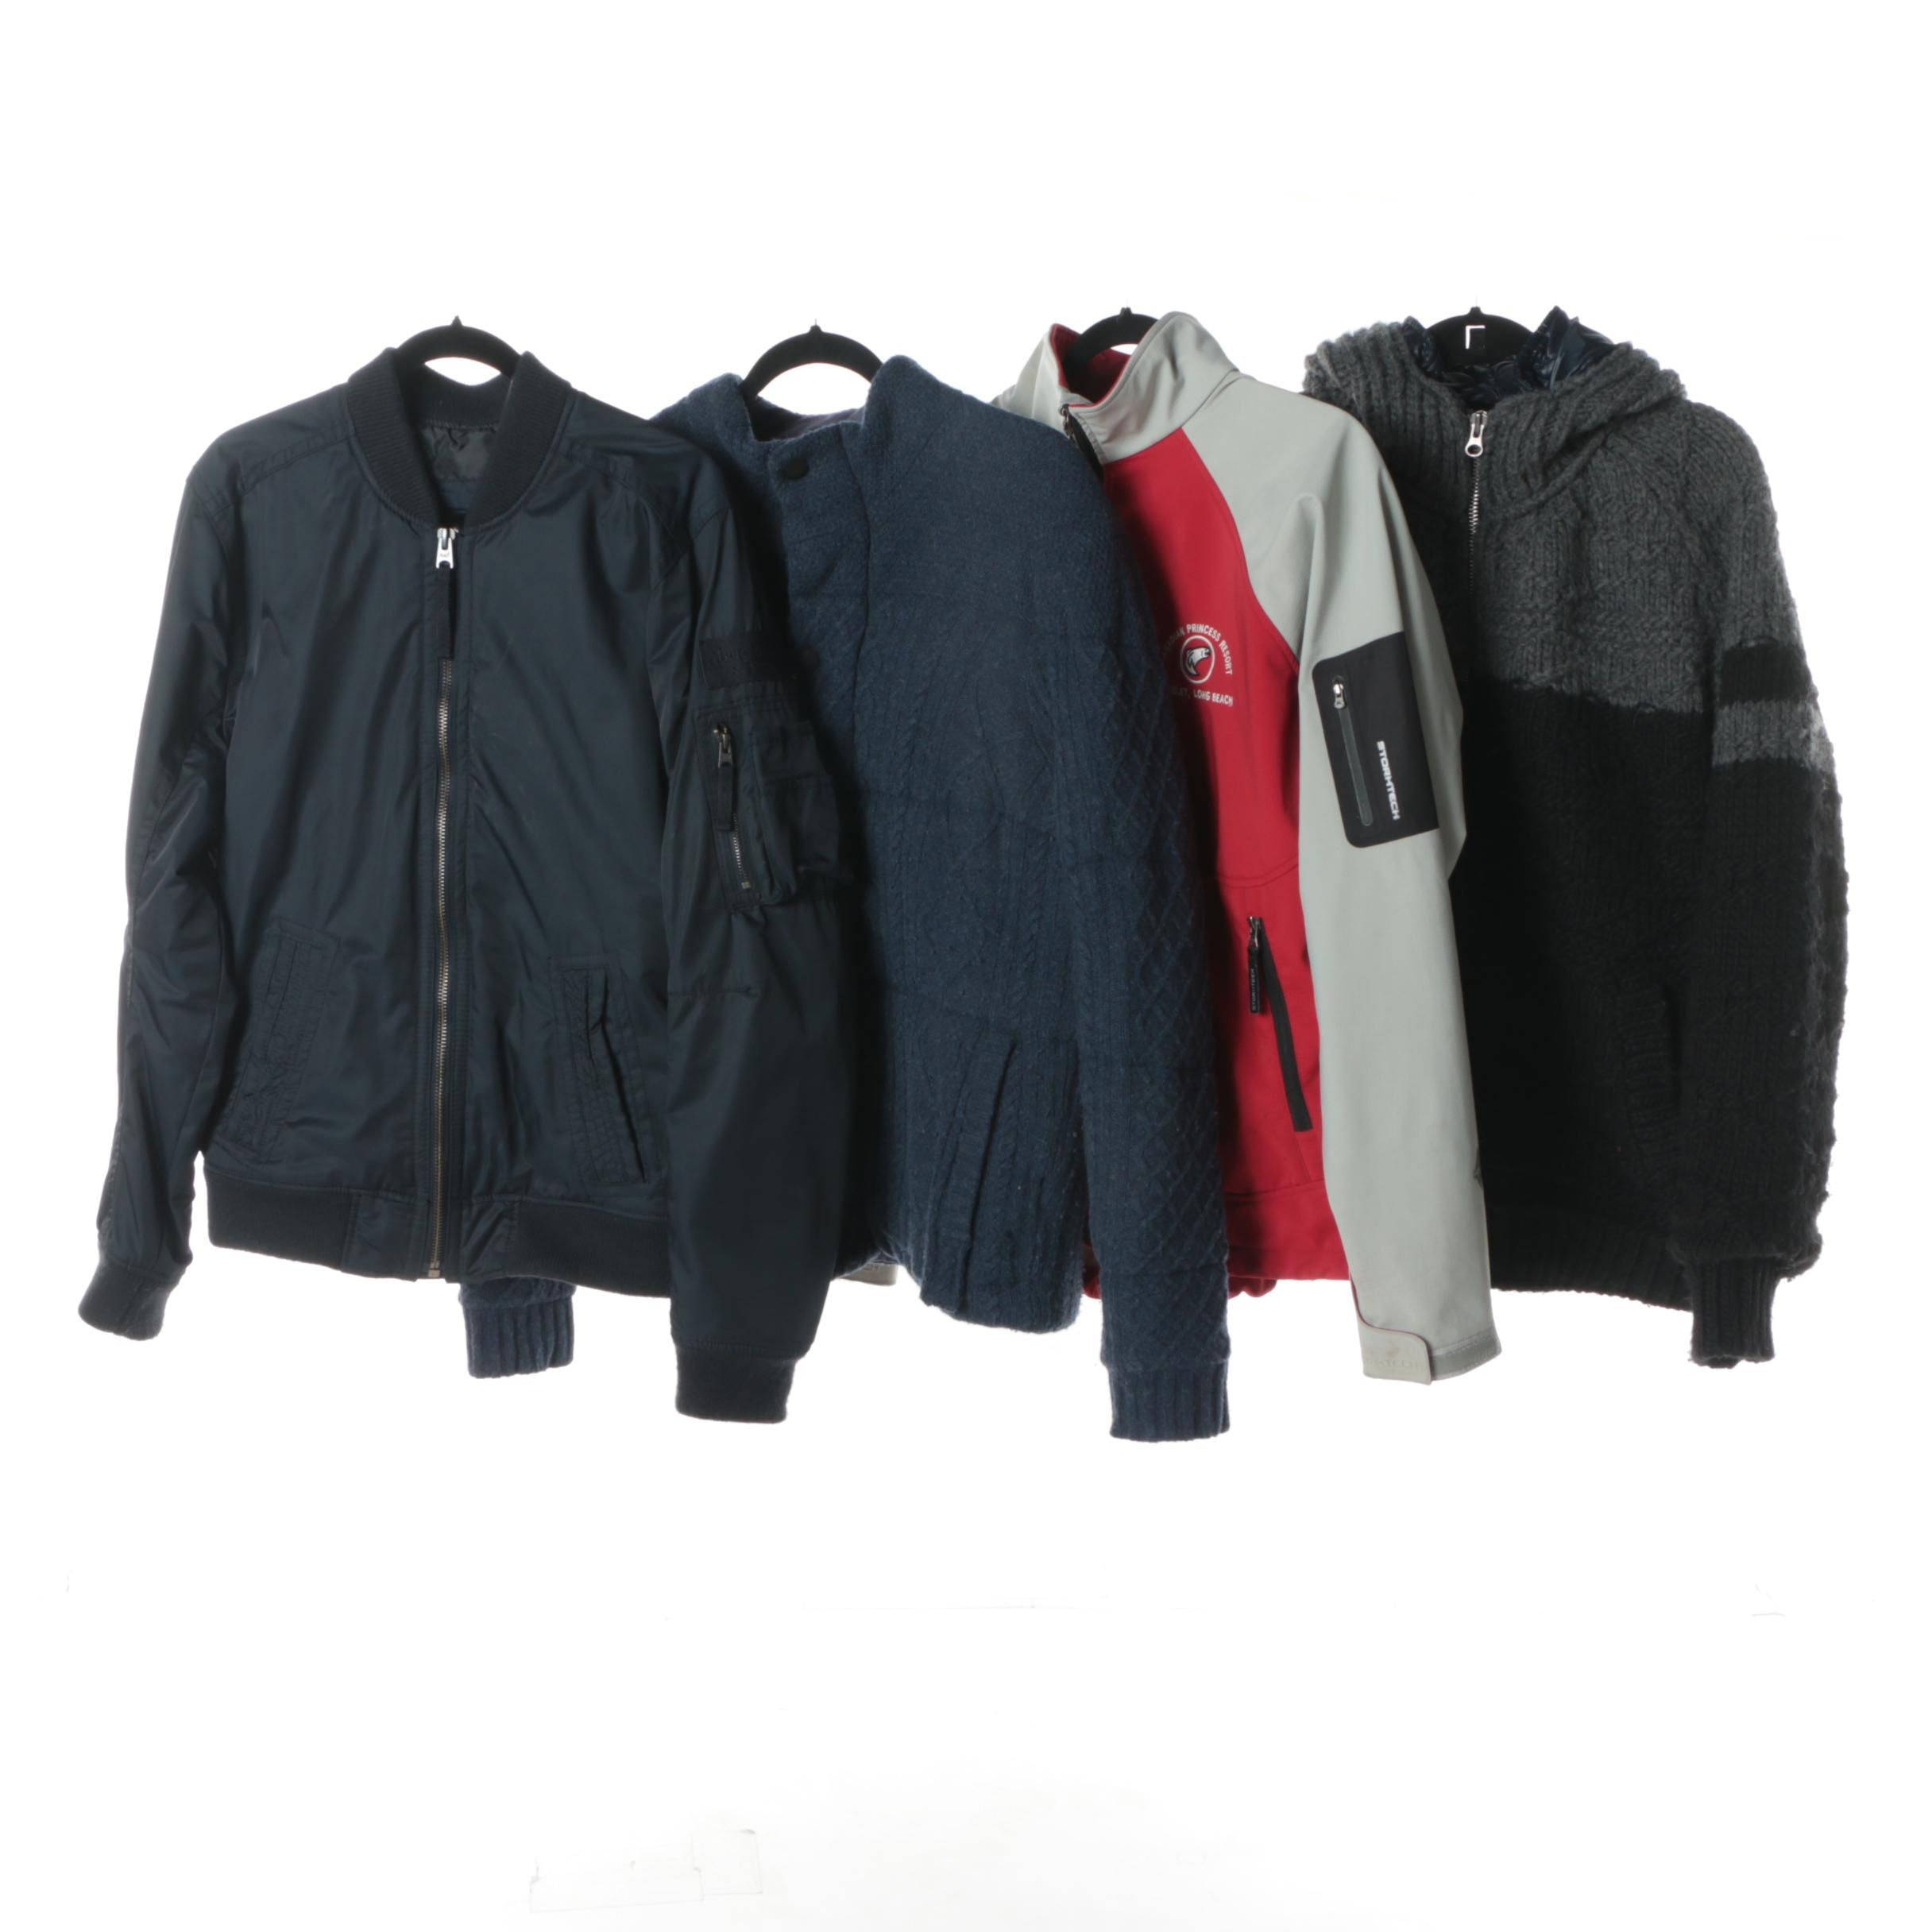 Men's Jackets Including Abercrombie & Fitch and Scotch & Soda